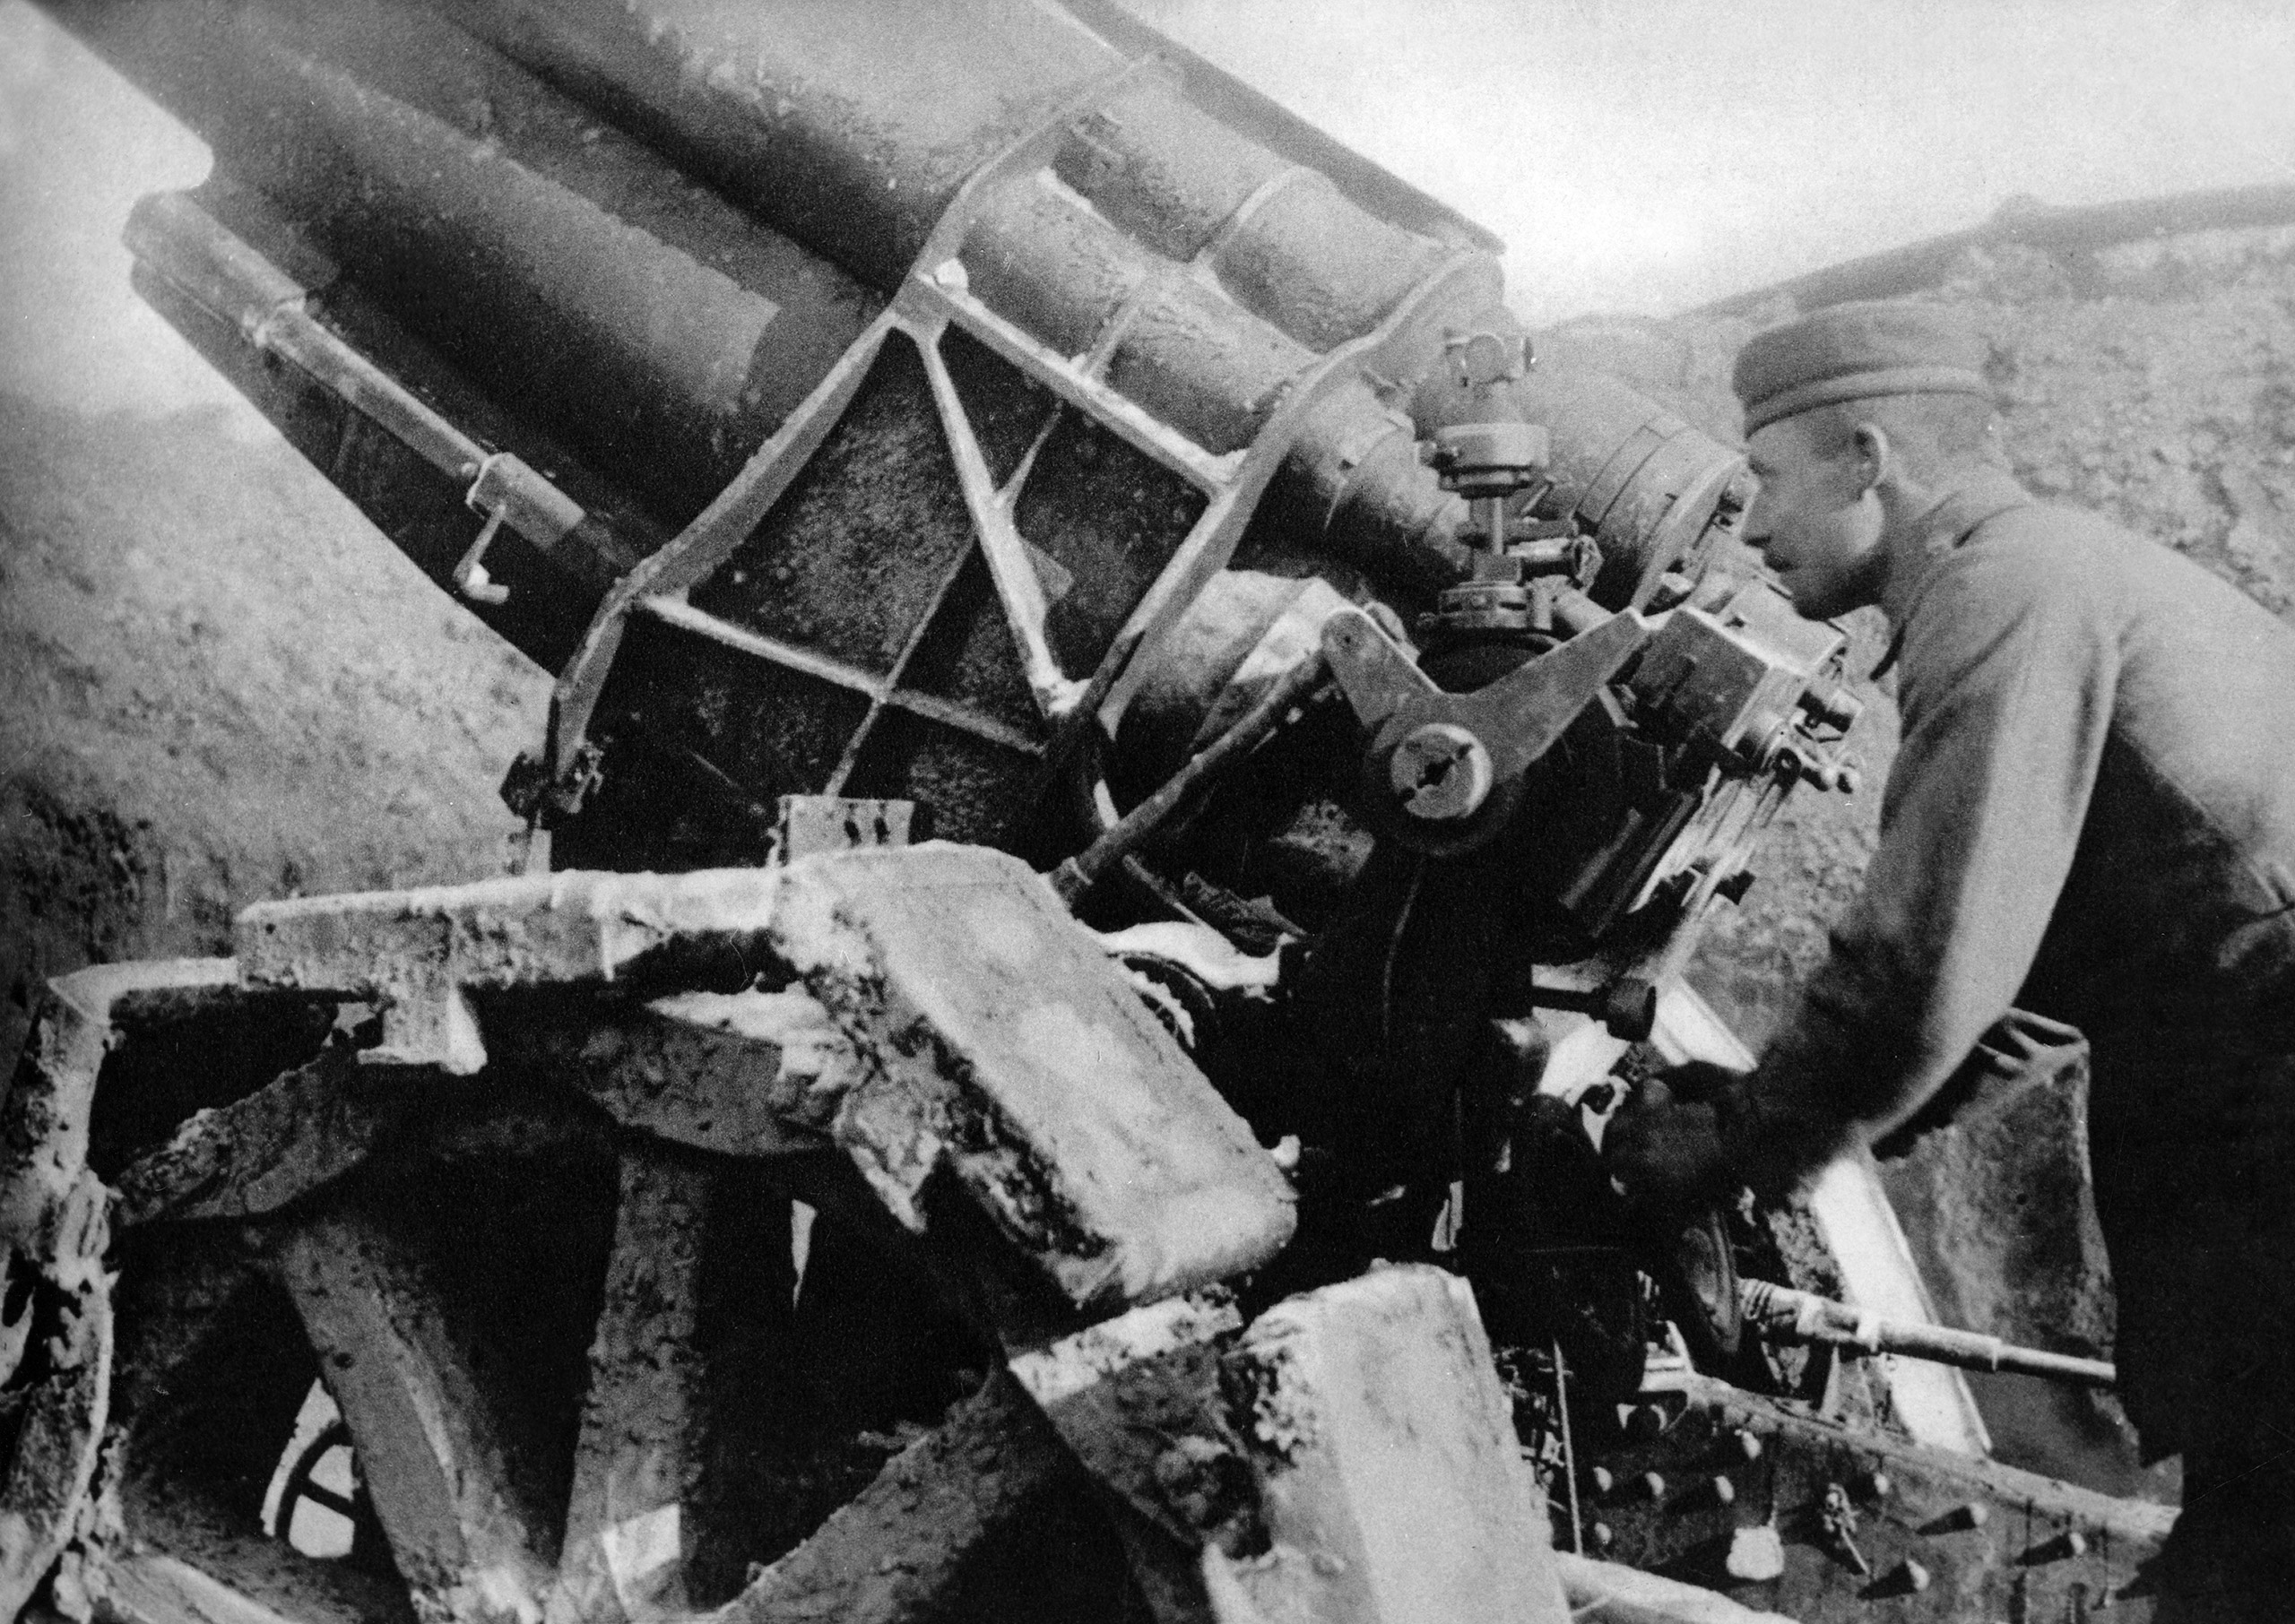 German heavy artillery. Cannon with gunner. Battle of Verdun, 1916.